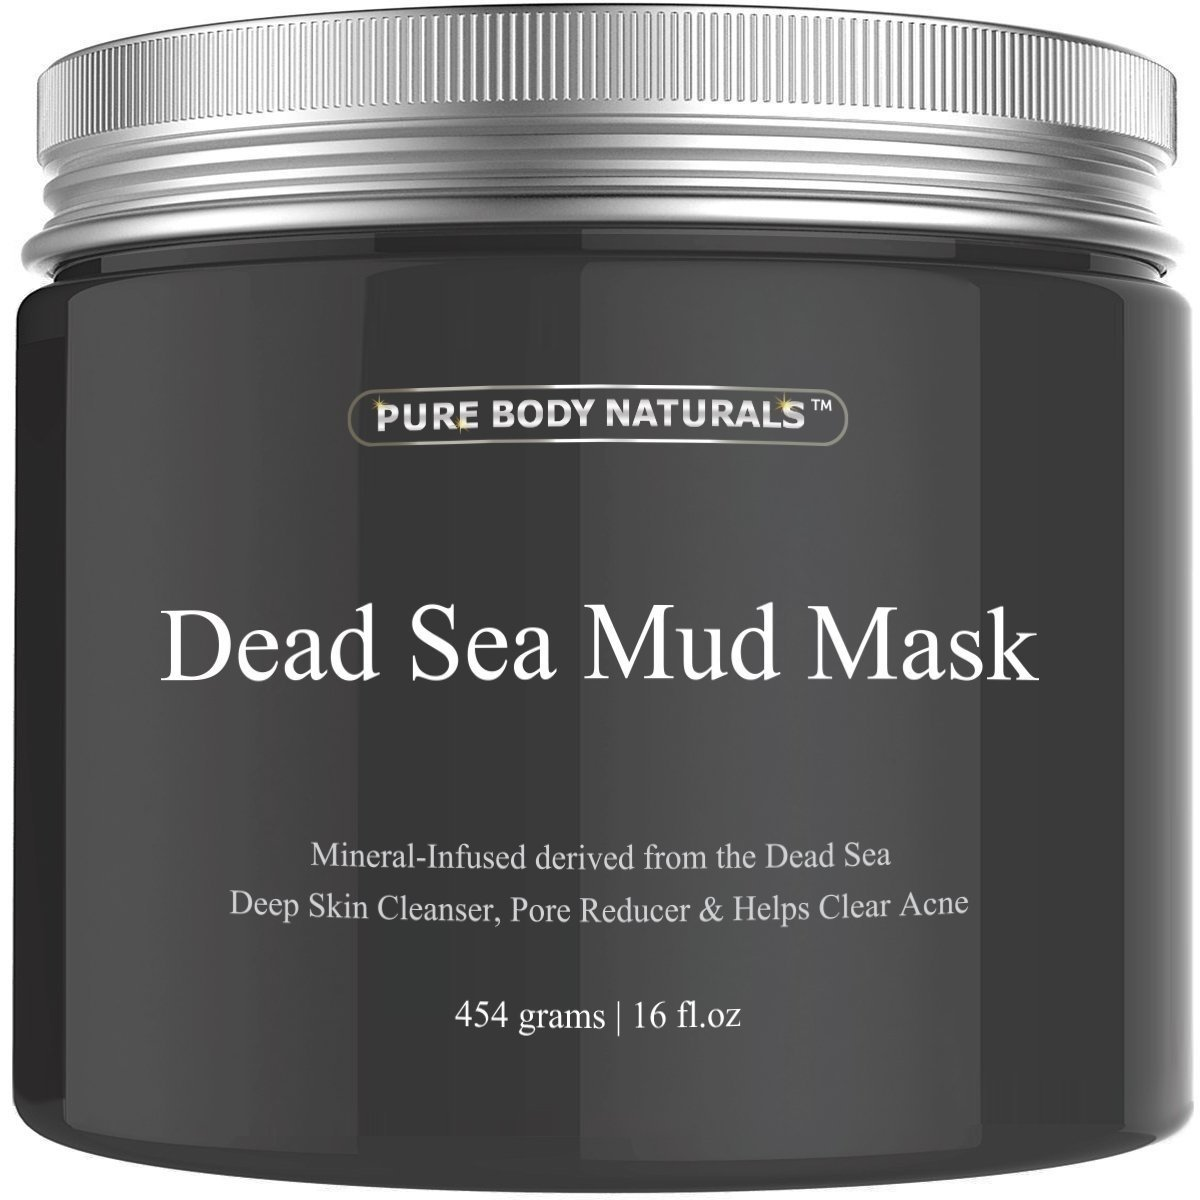 Dead Sea Mud Mask for Face and Body, Purifying Face Mask for Acne, Blackheads, and Oily Skin by Pure Body Naturals (Original, 16 Fl. Oz.)